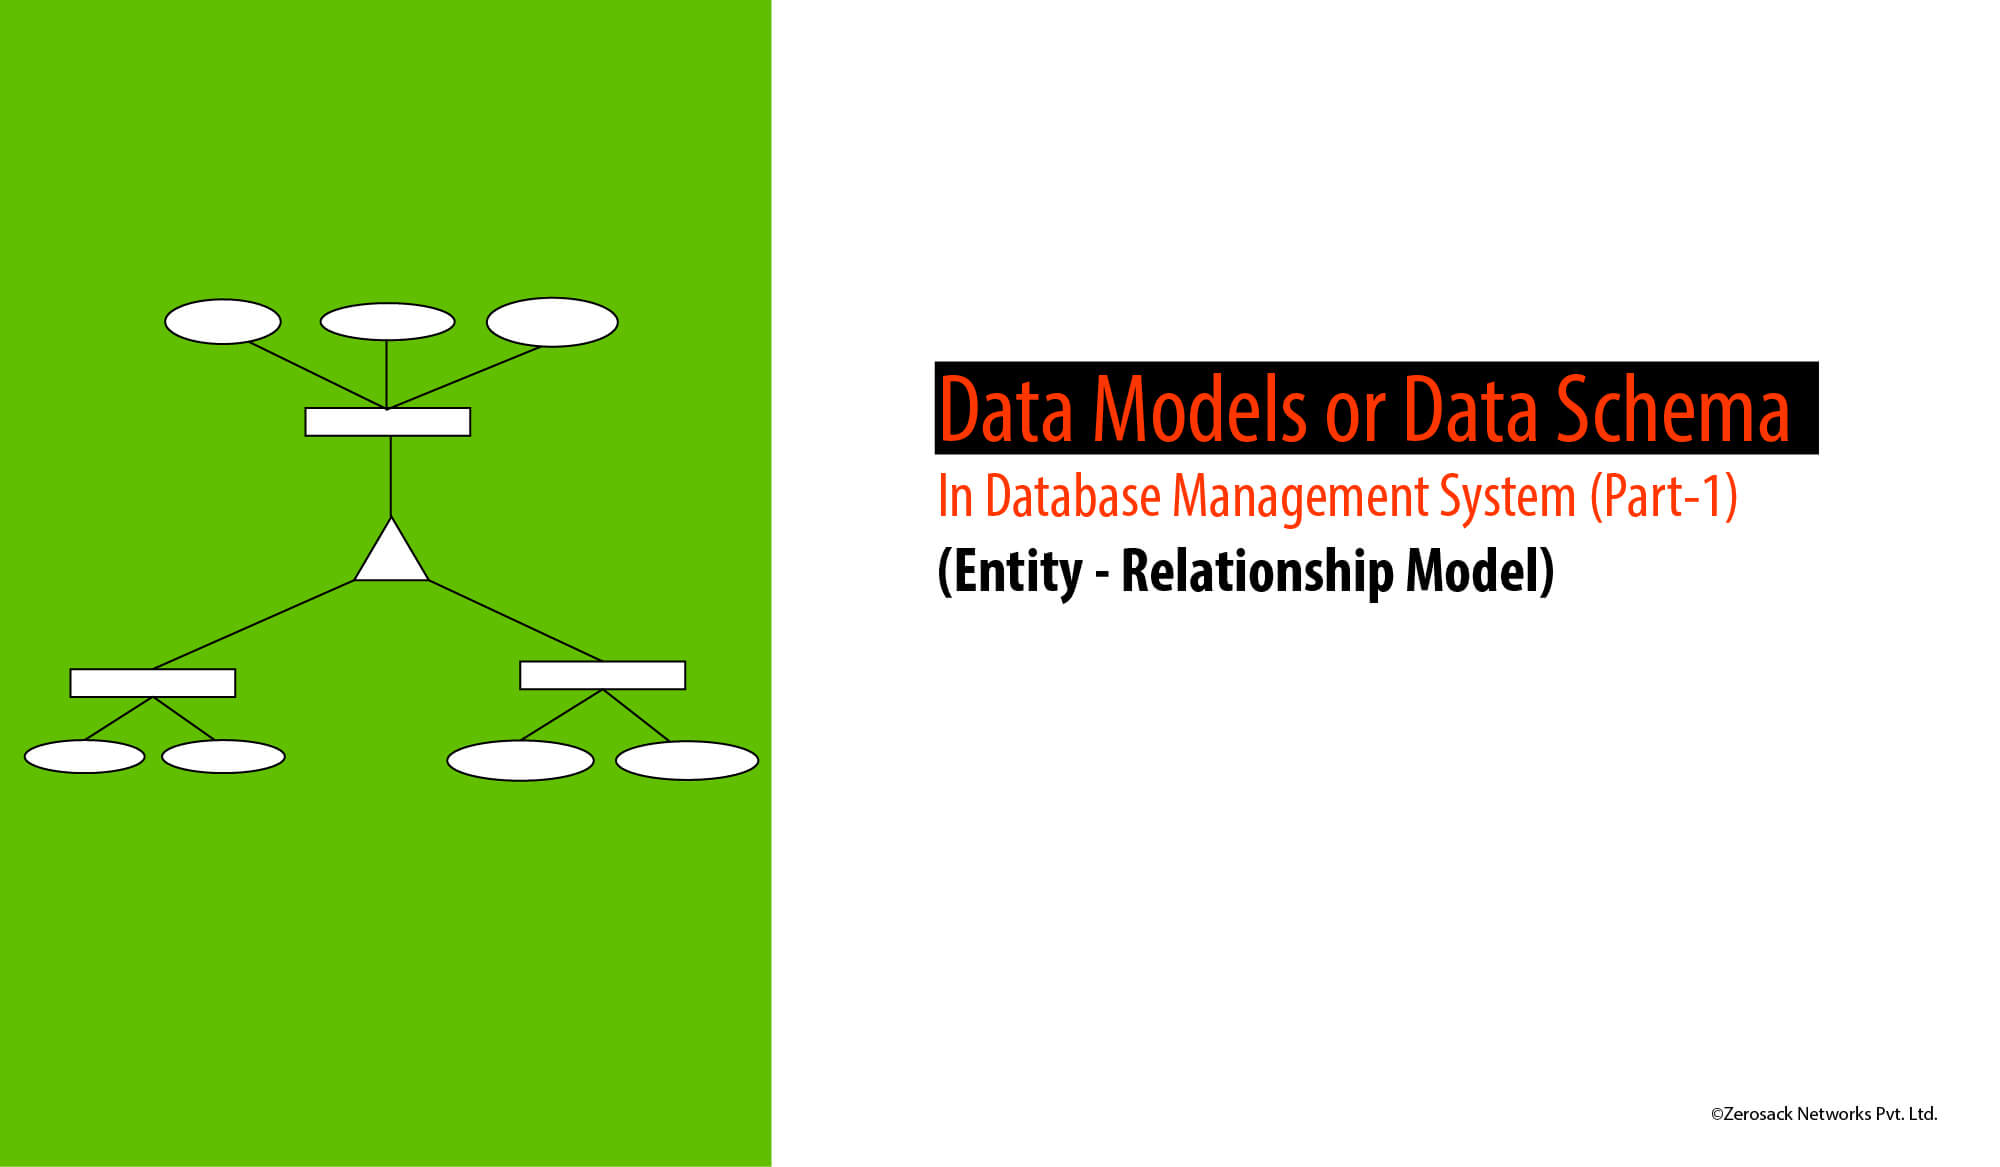 Data-models-in-database-management-system.